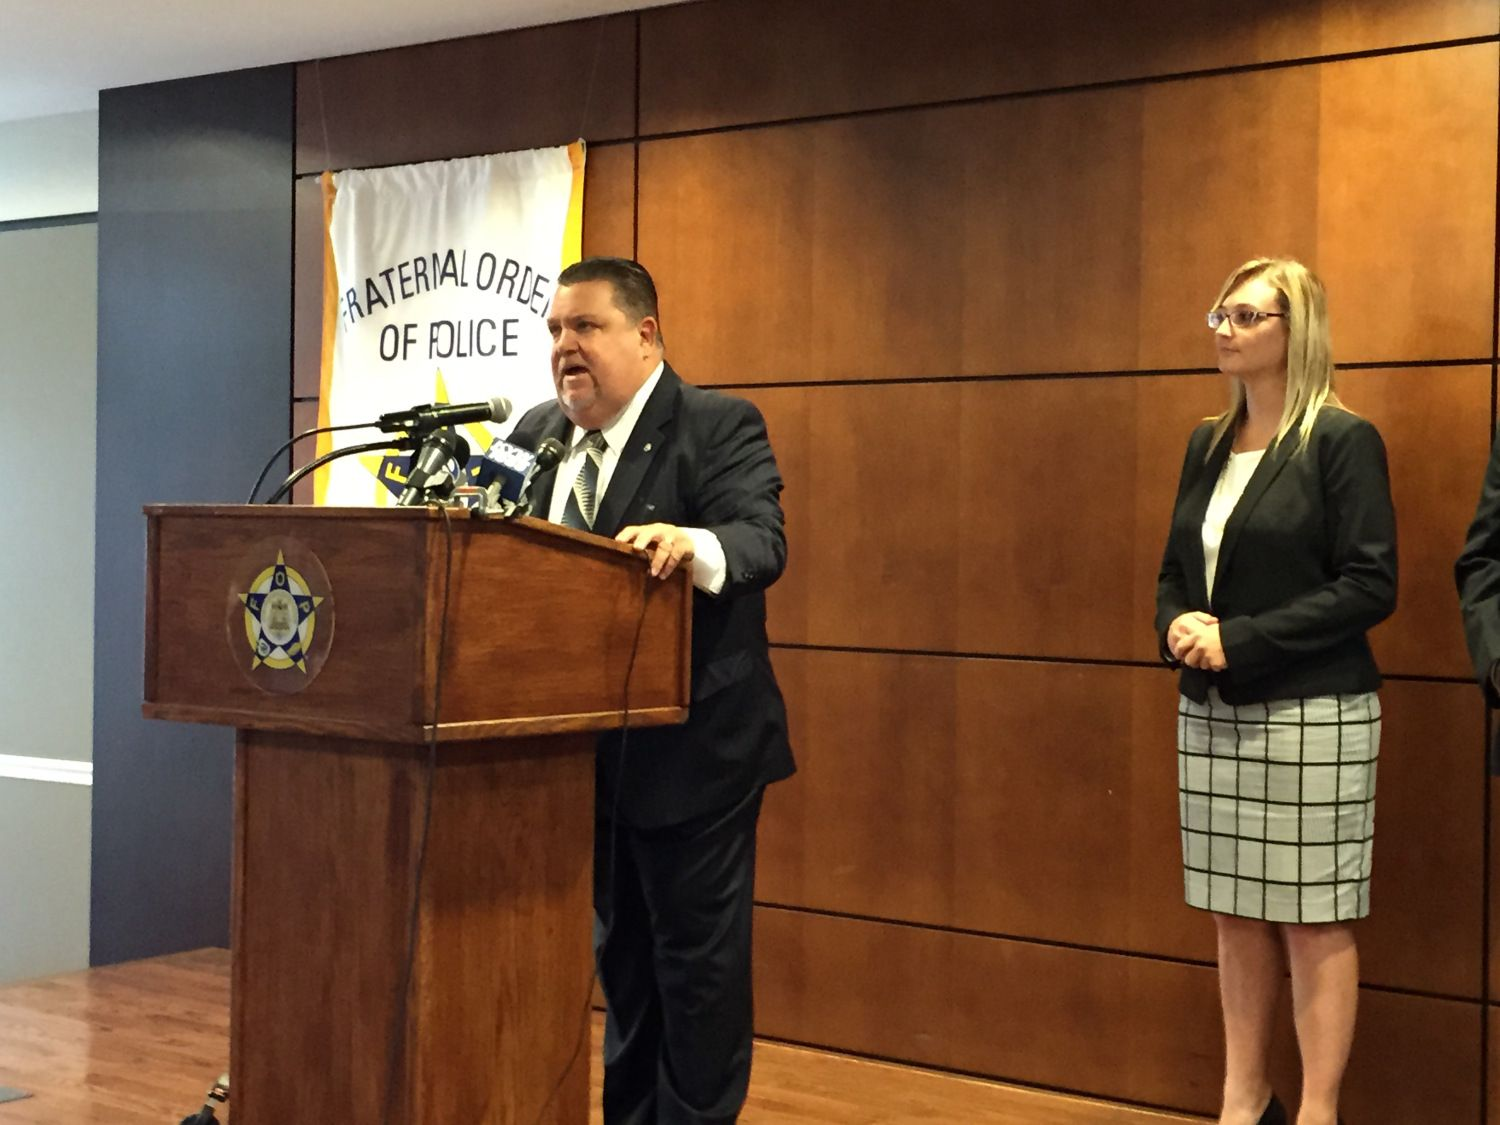 Philly FOP Prez on Endorsement: Clinton 'Blew The Police Off' « CBS Philly